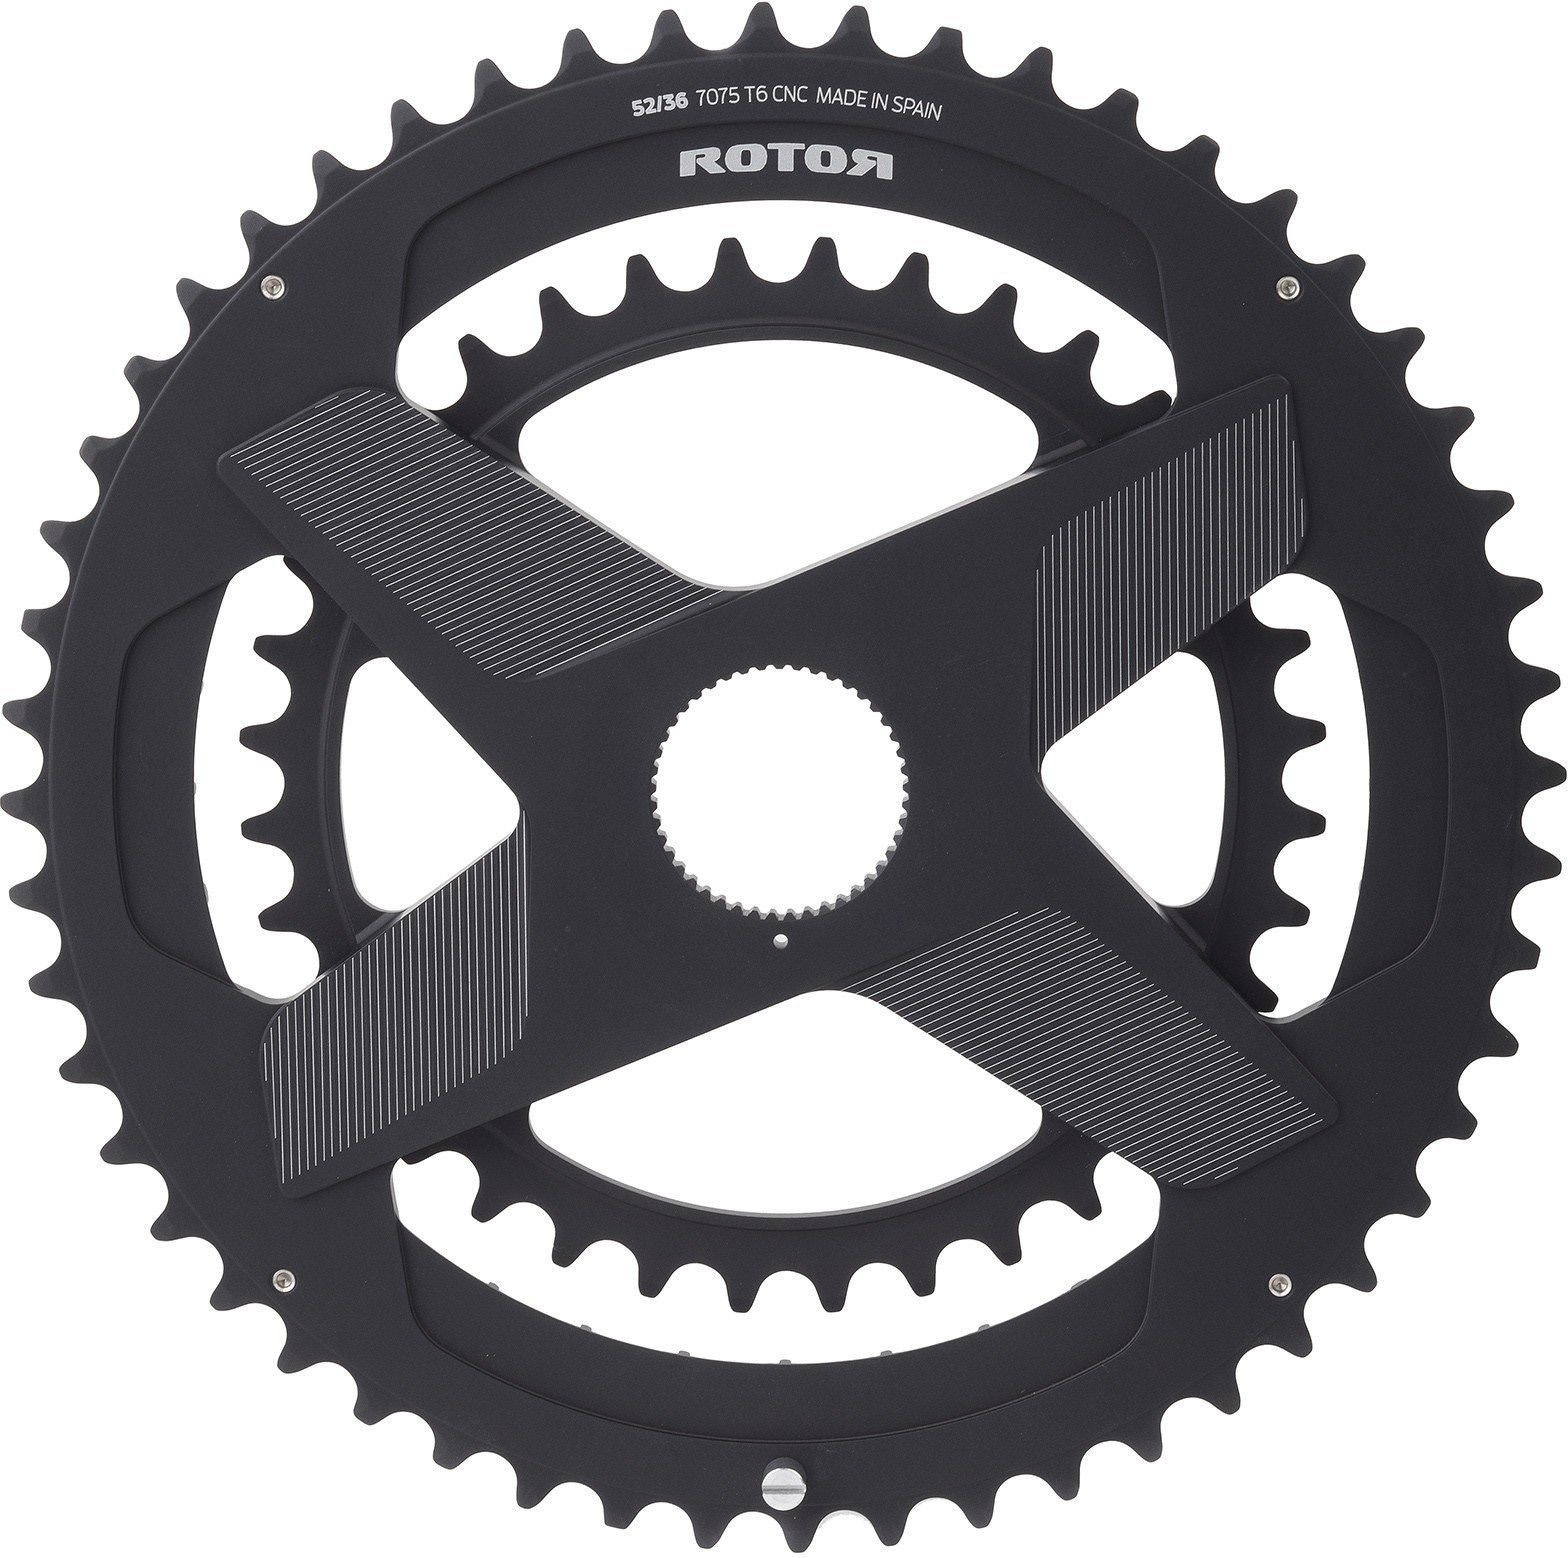 Rotor DM Round Chainring Outer | chainrings_component